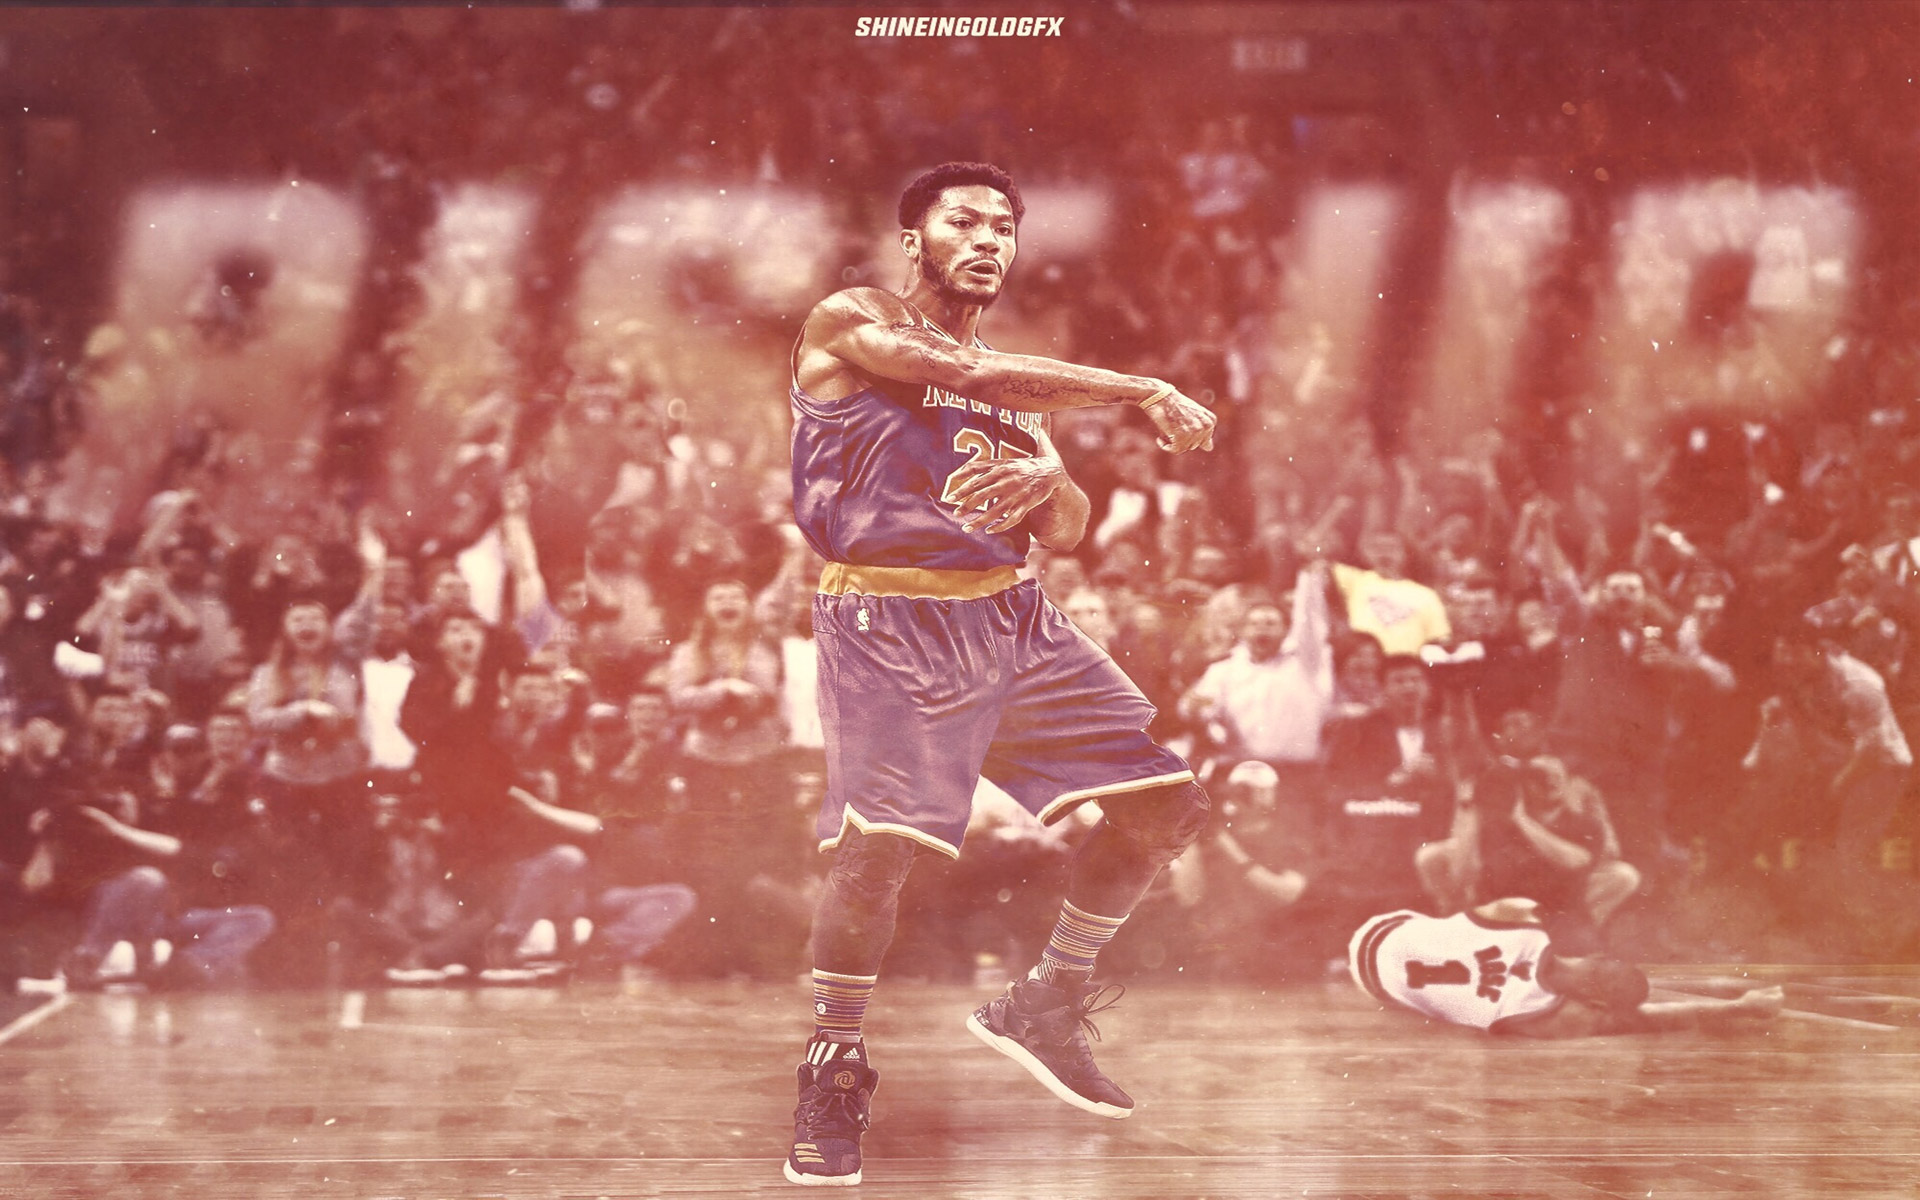 a4598181f123 Derrick Rose Rise Up 2016 1920x1200 Wallpaper